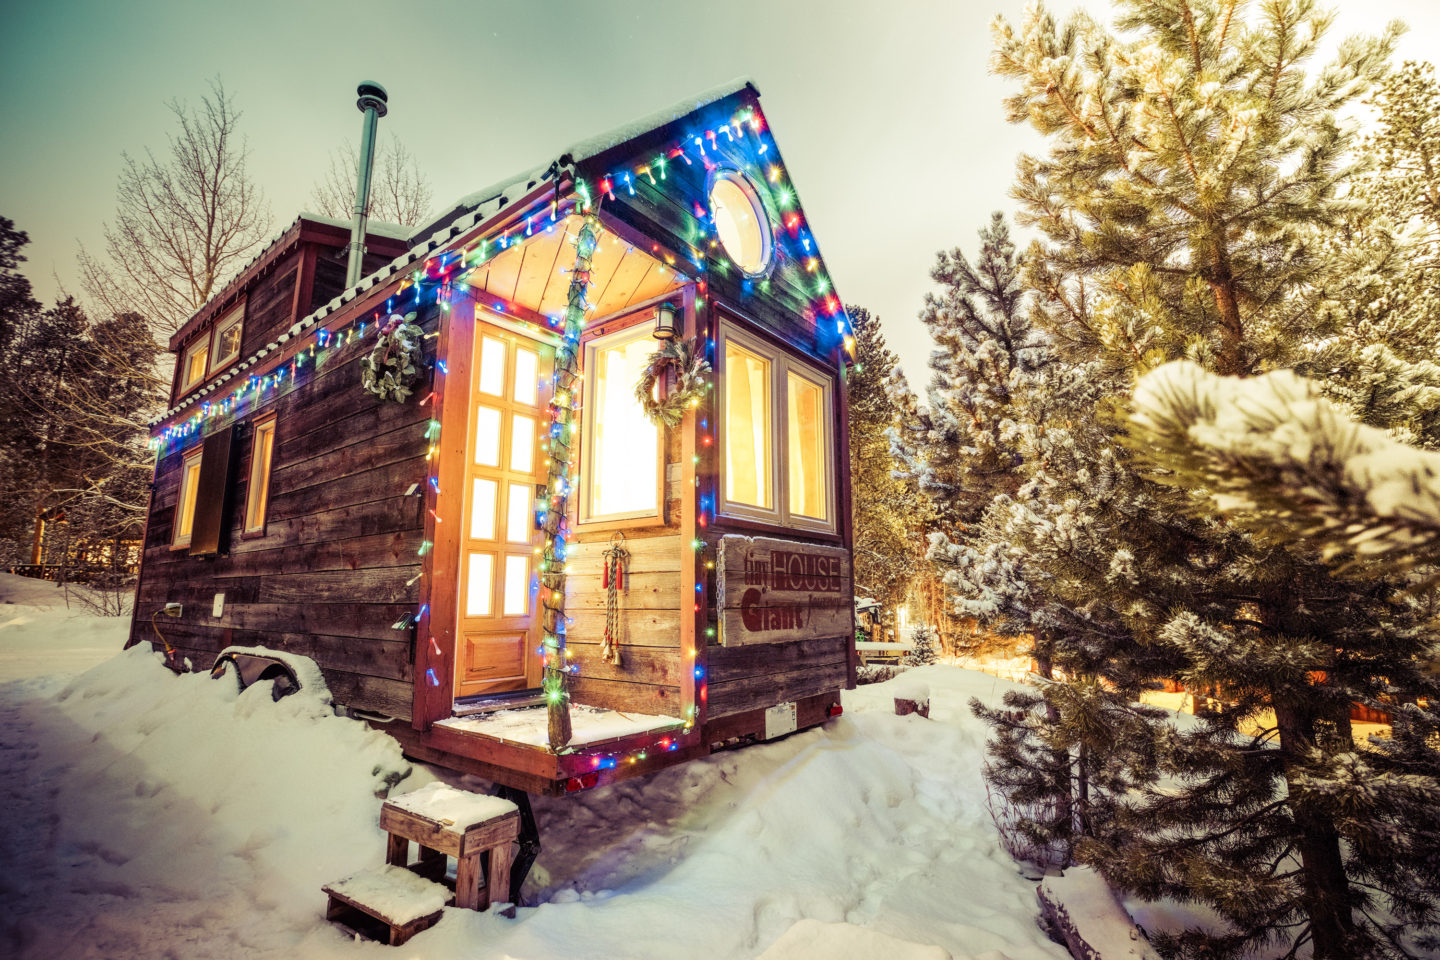 A Merry Little Christmas in a Tiny House